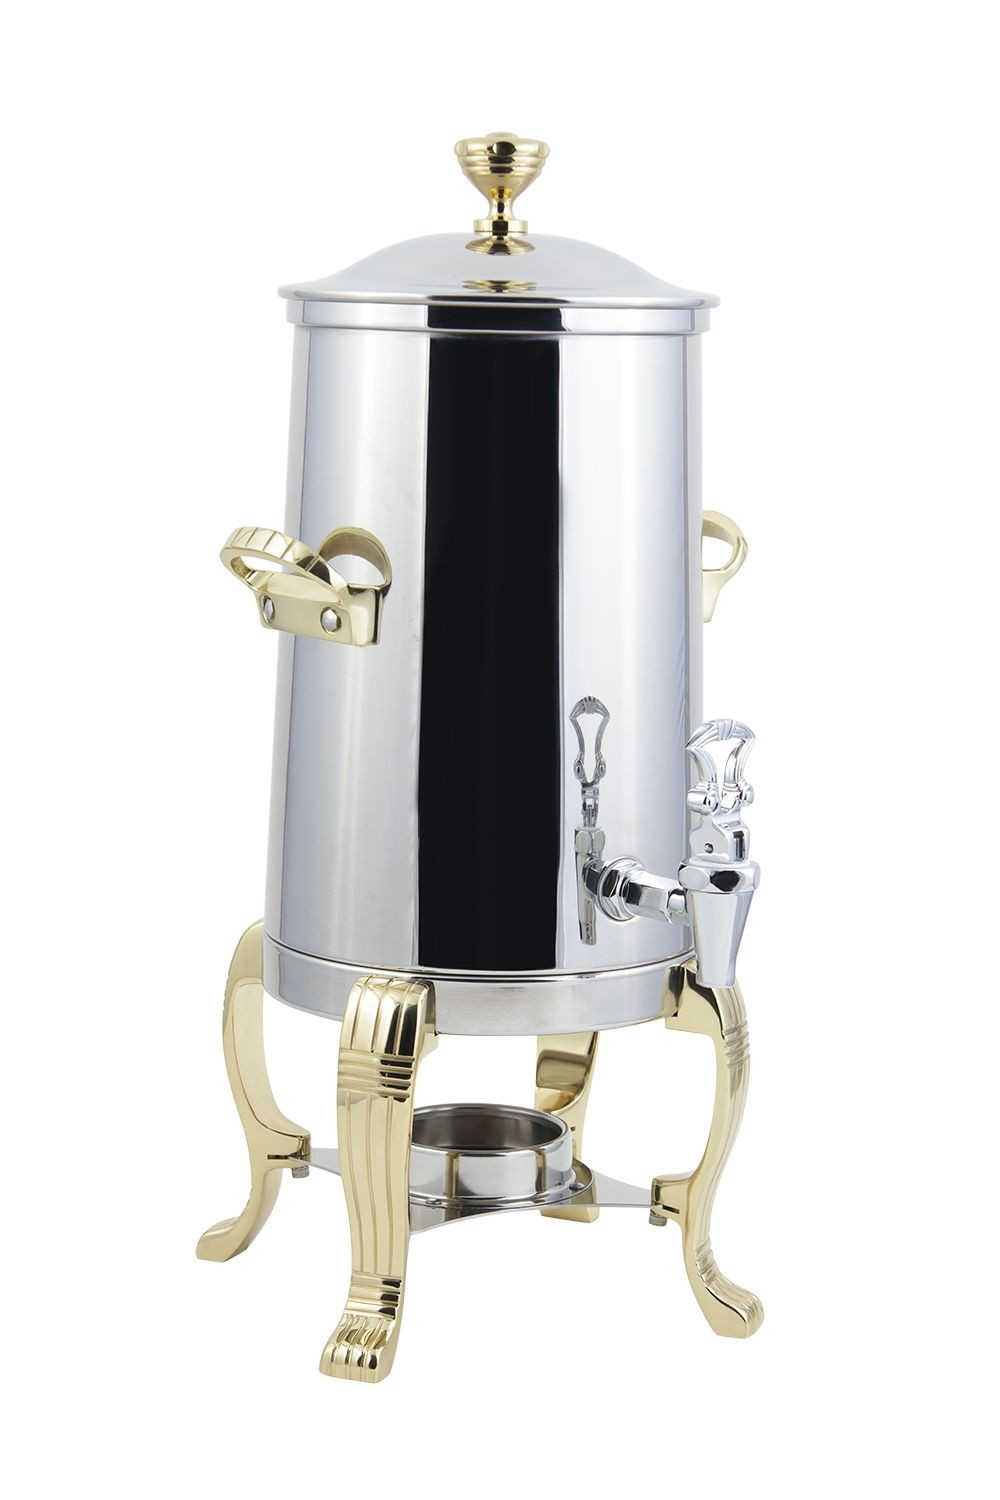 Bon Chef 41005 Aurora Single Wall Non-Insulated Coffee Urn, 5 1/2 Gallon